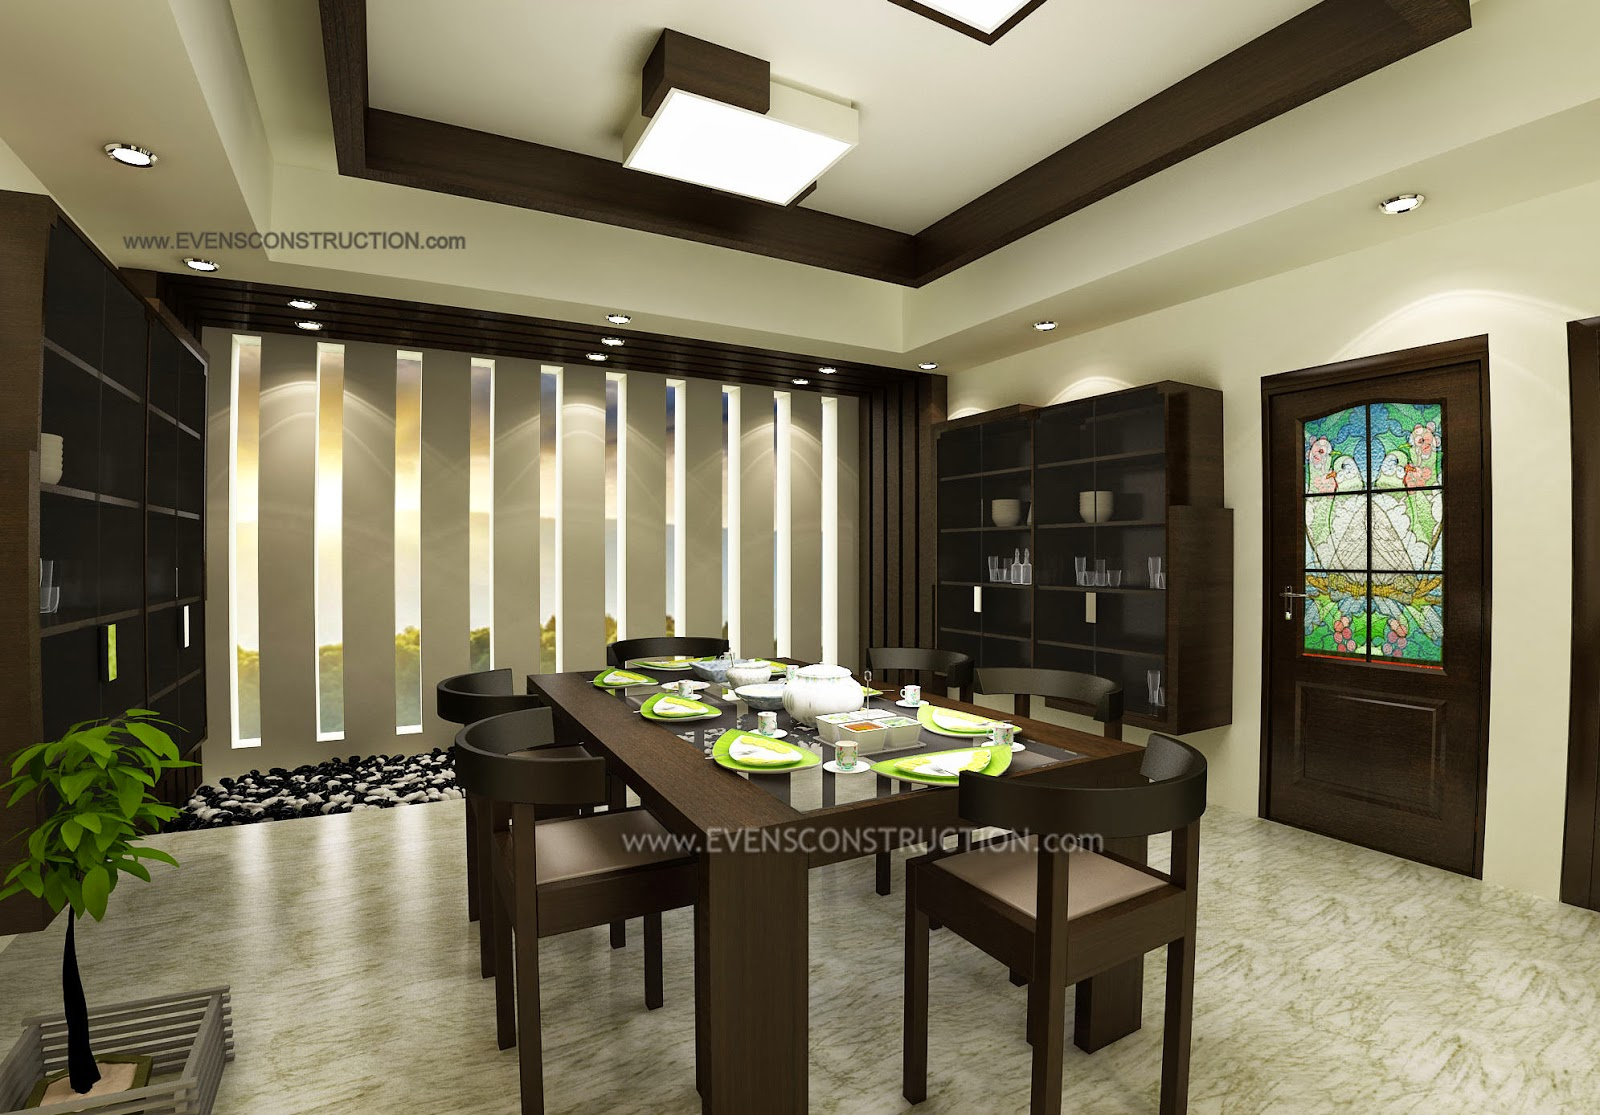 Evens construction pvt ltd modern dining room for Dining room interior images